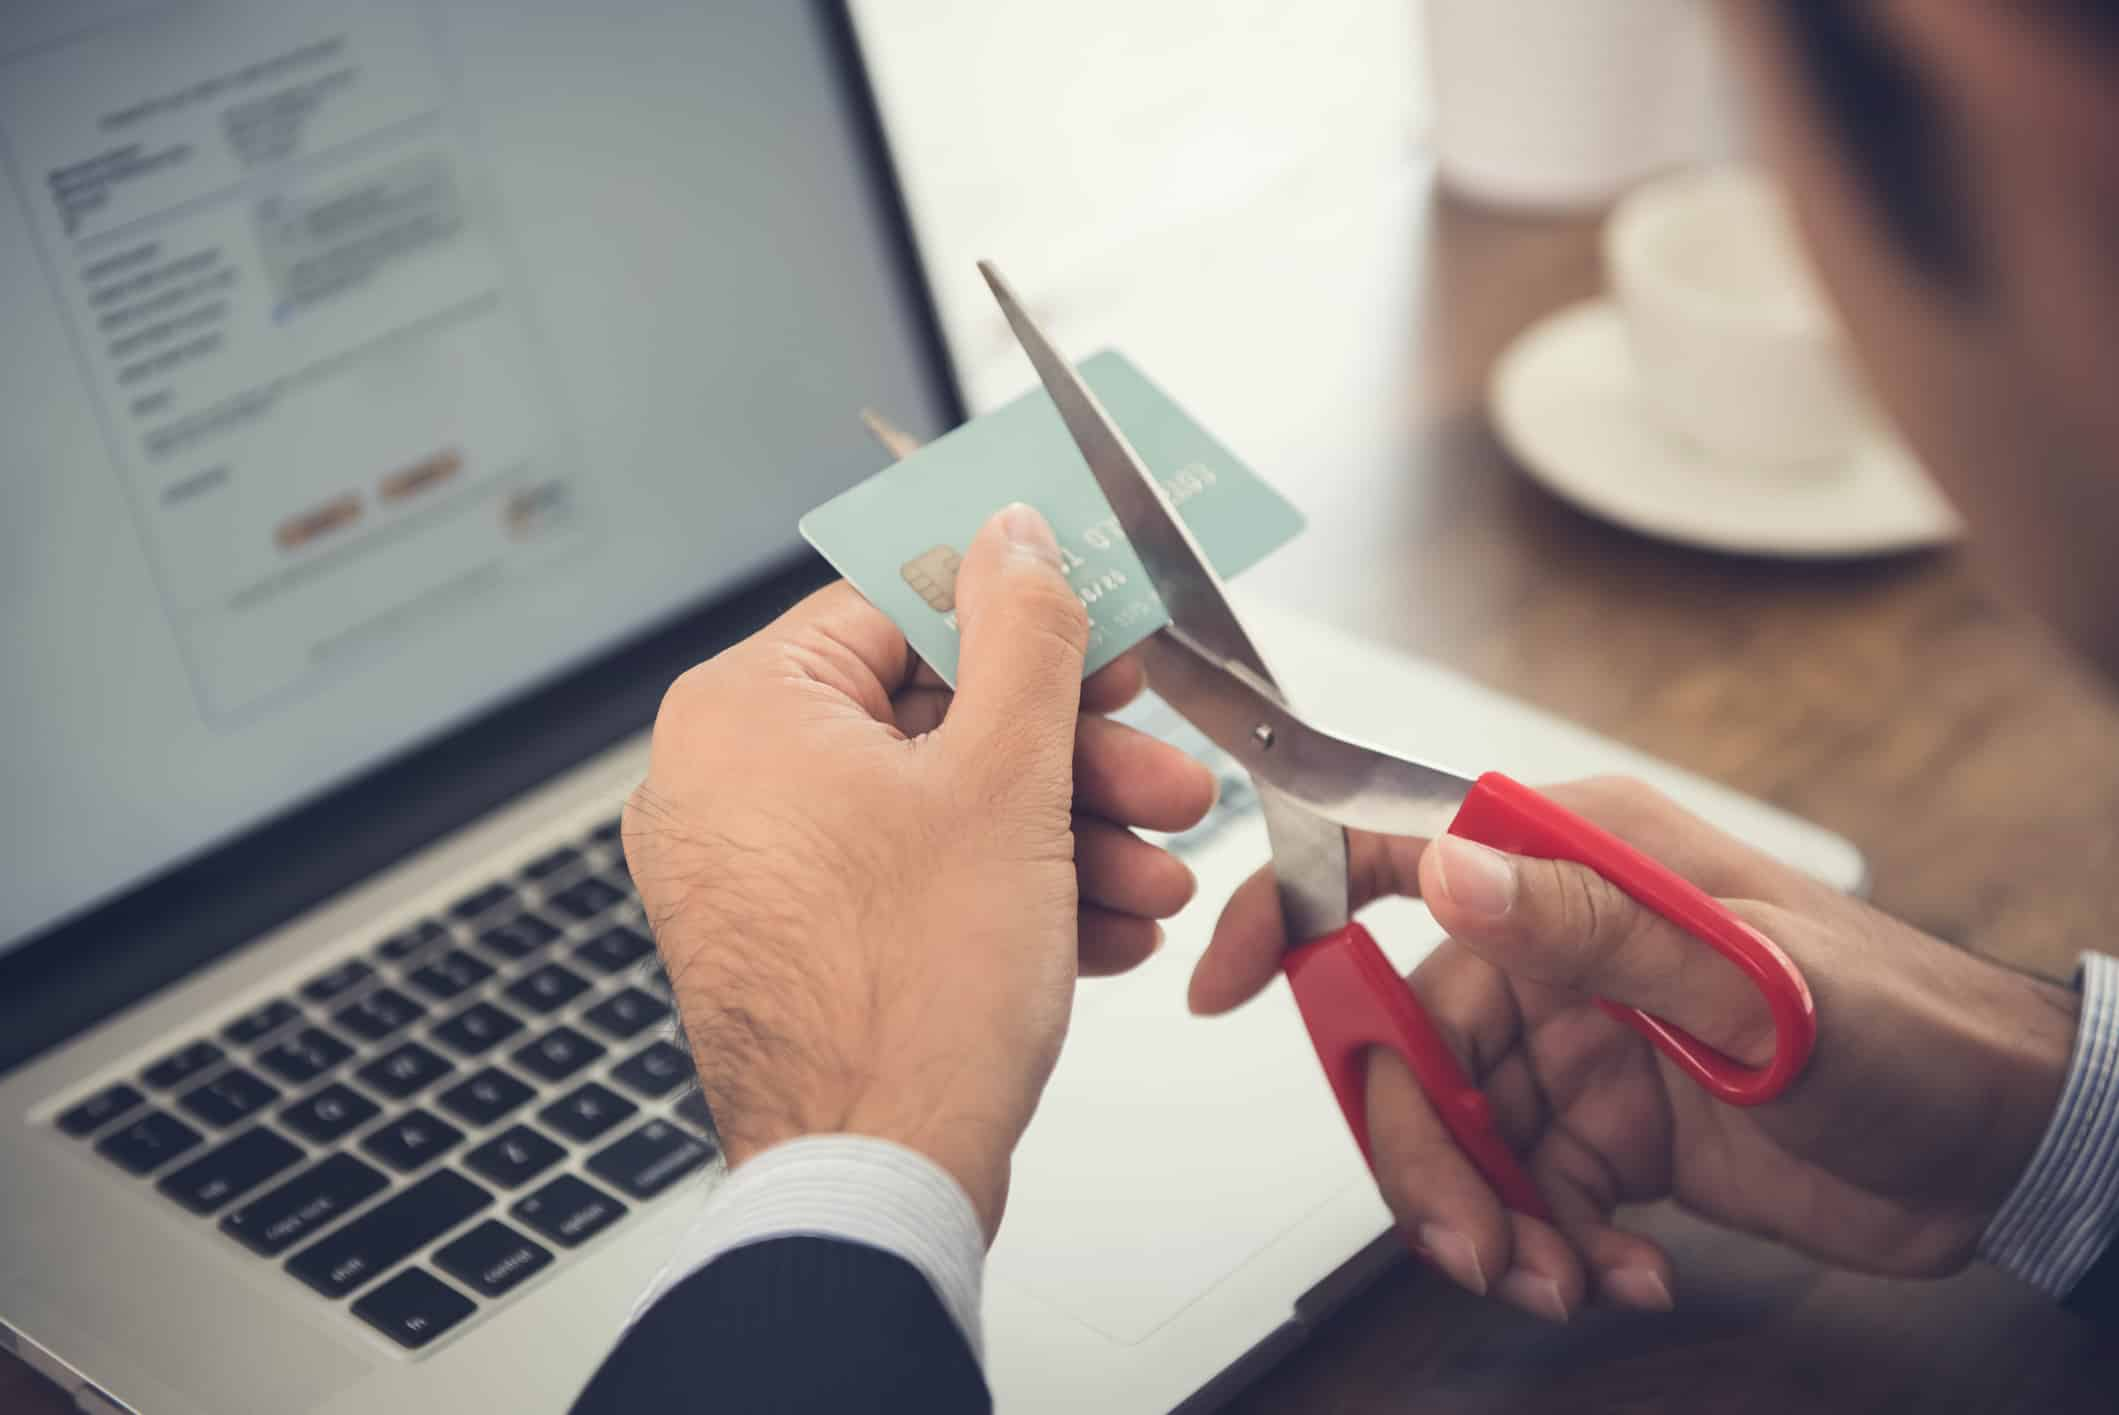 Businessman cutting a credit card that canceled by financial institute due to negligent usage